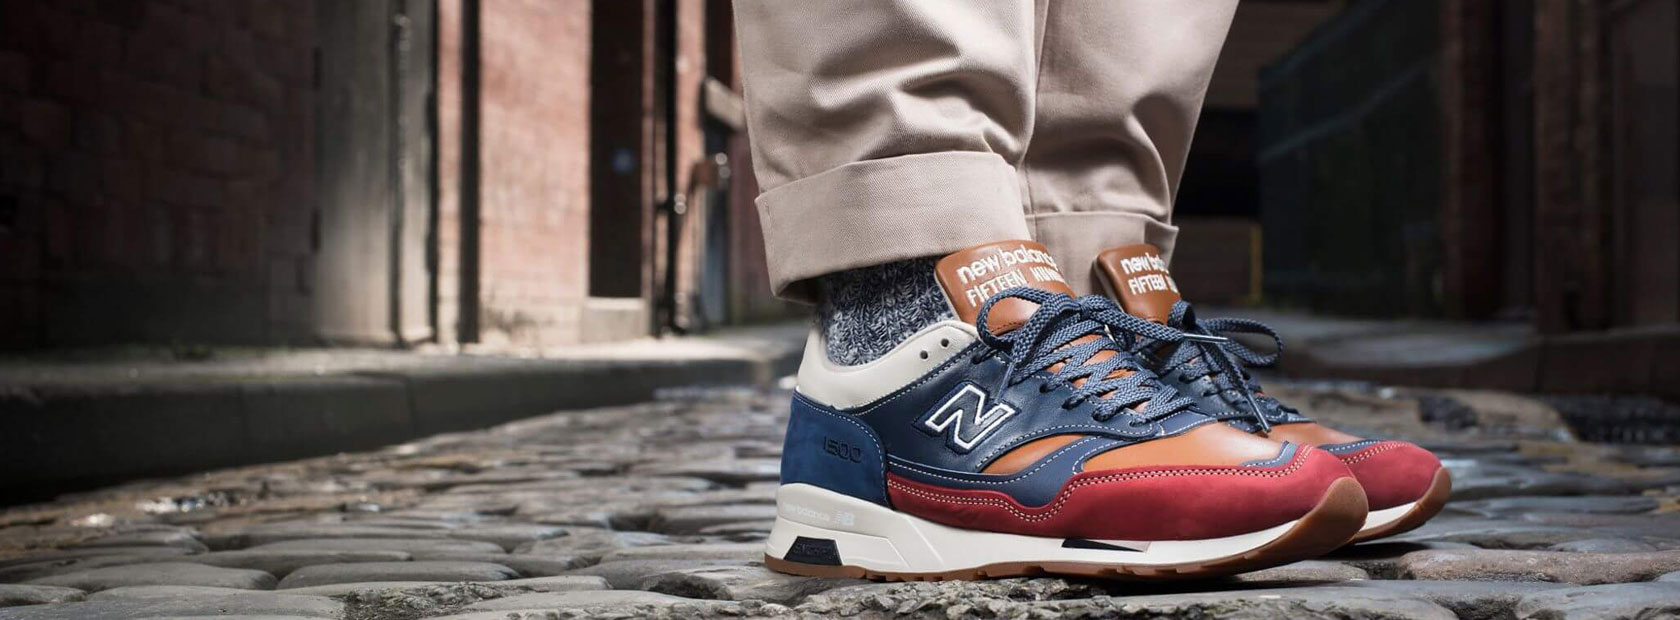 New Balance M1500 Modern Gentleman Pack